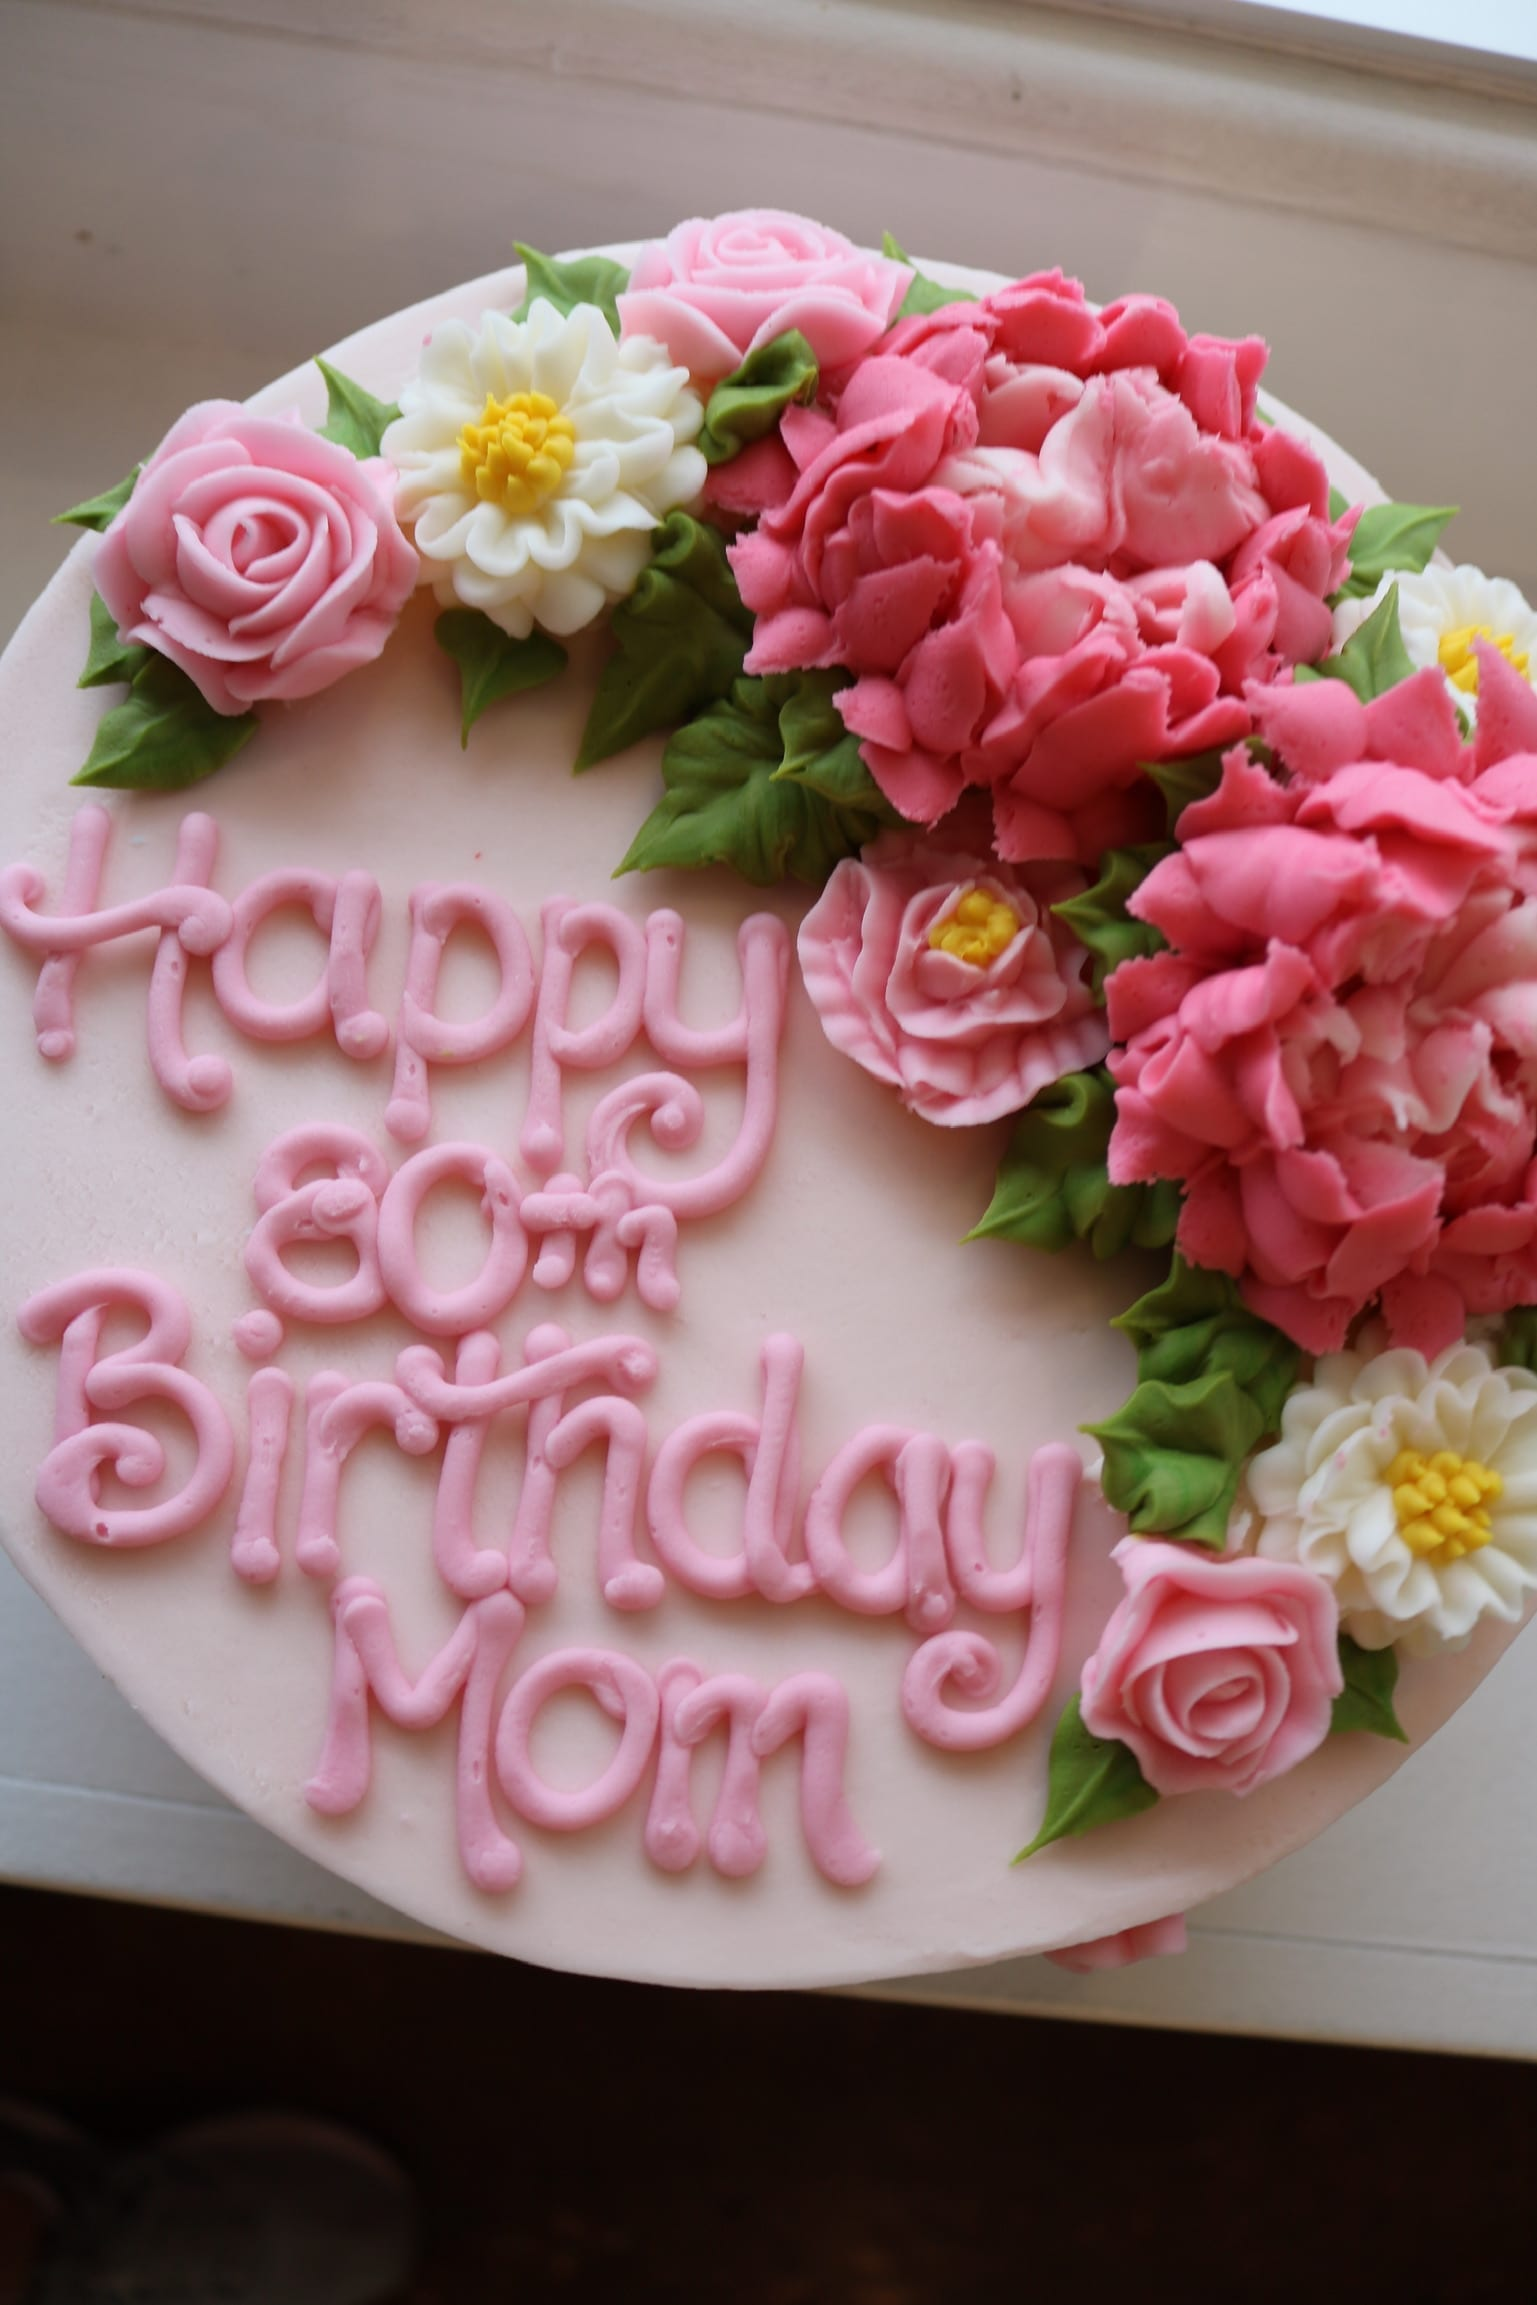 Pink Floral Birthday Cake for Mom | 3 Sweet Girls Cakery